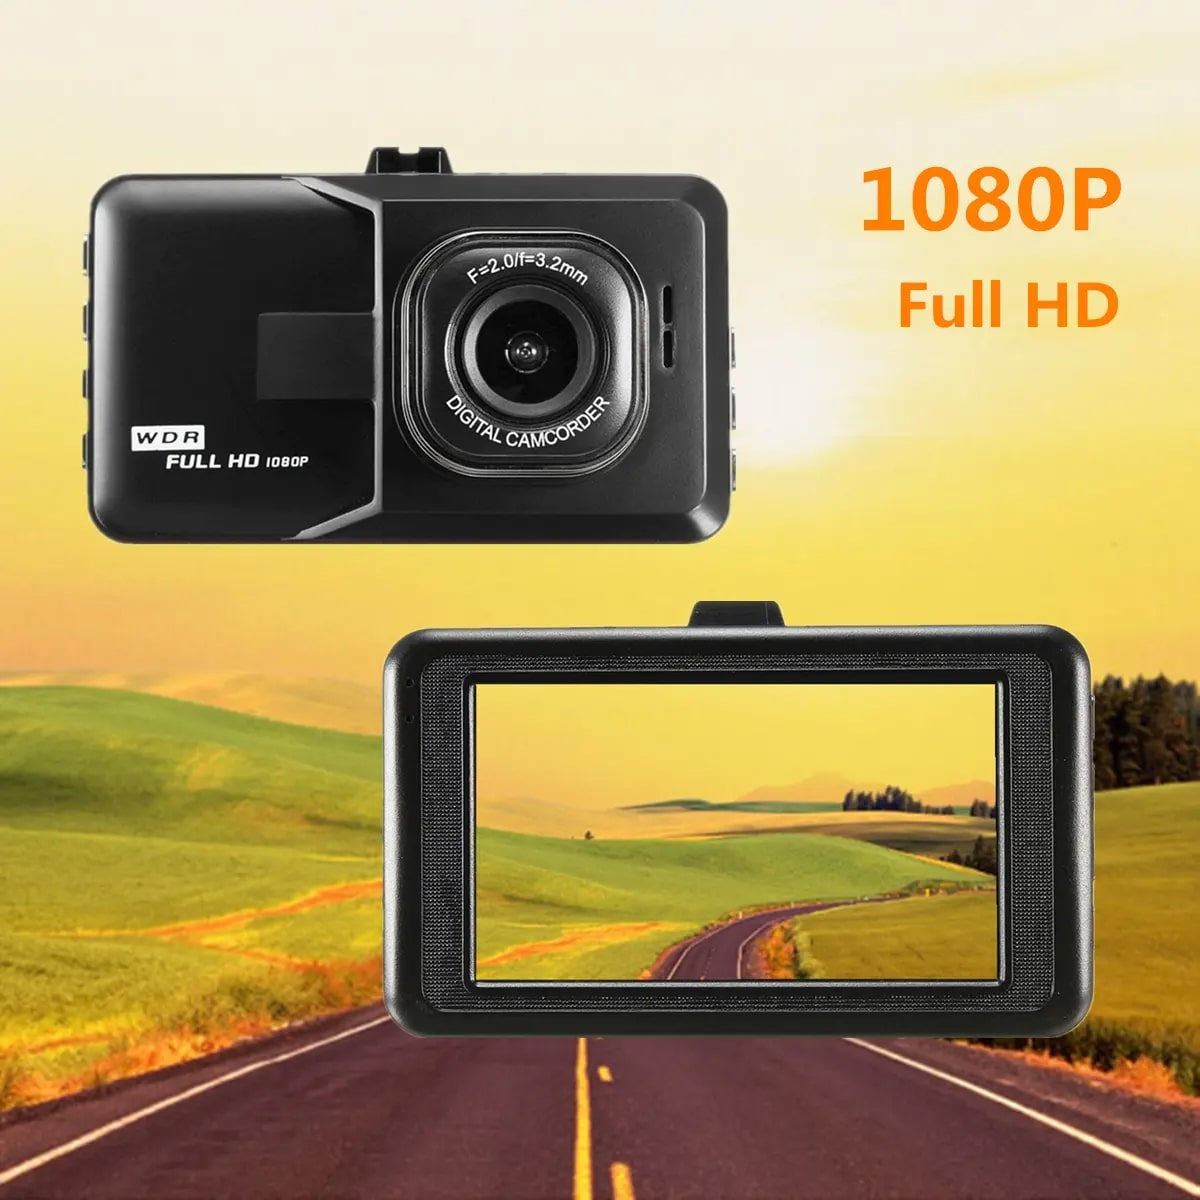 Vehicle Dash Cam Blackbox DVR with WDR - Full HD 1080 VISOR DVR with Exciting Features. NEW Products